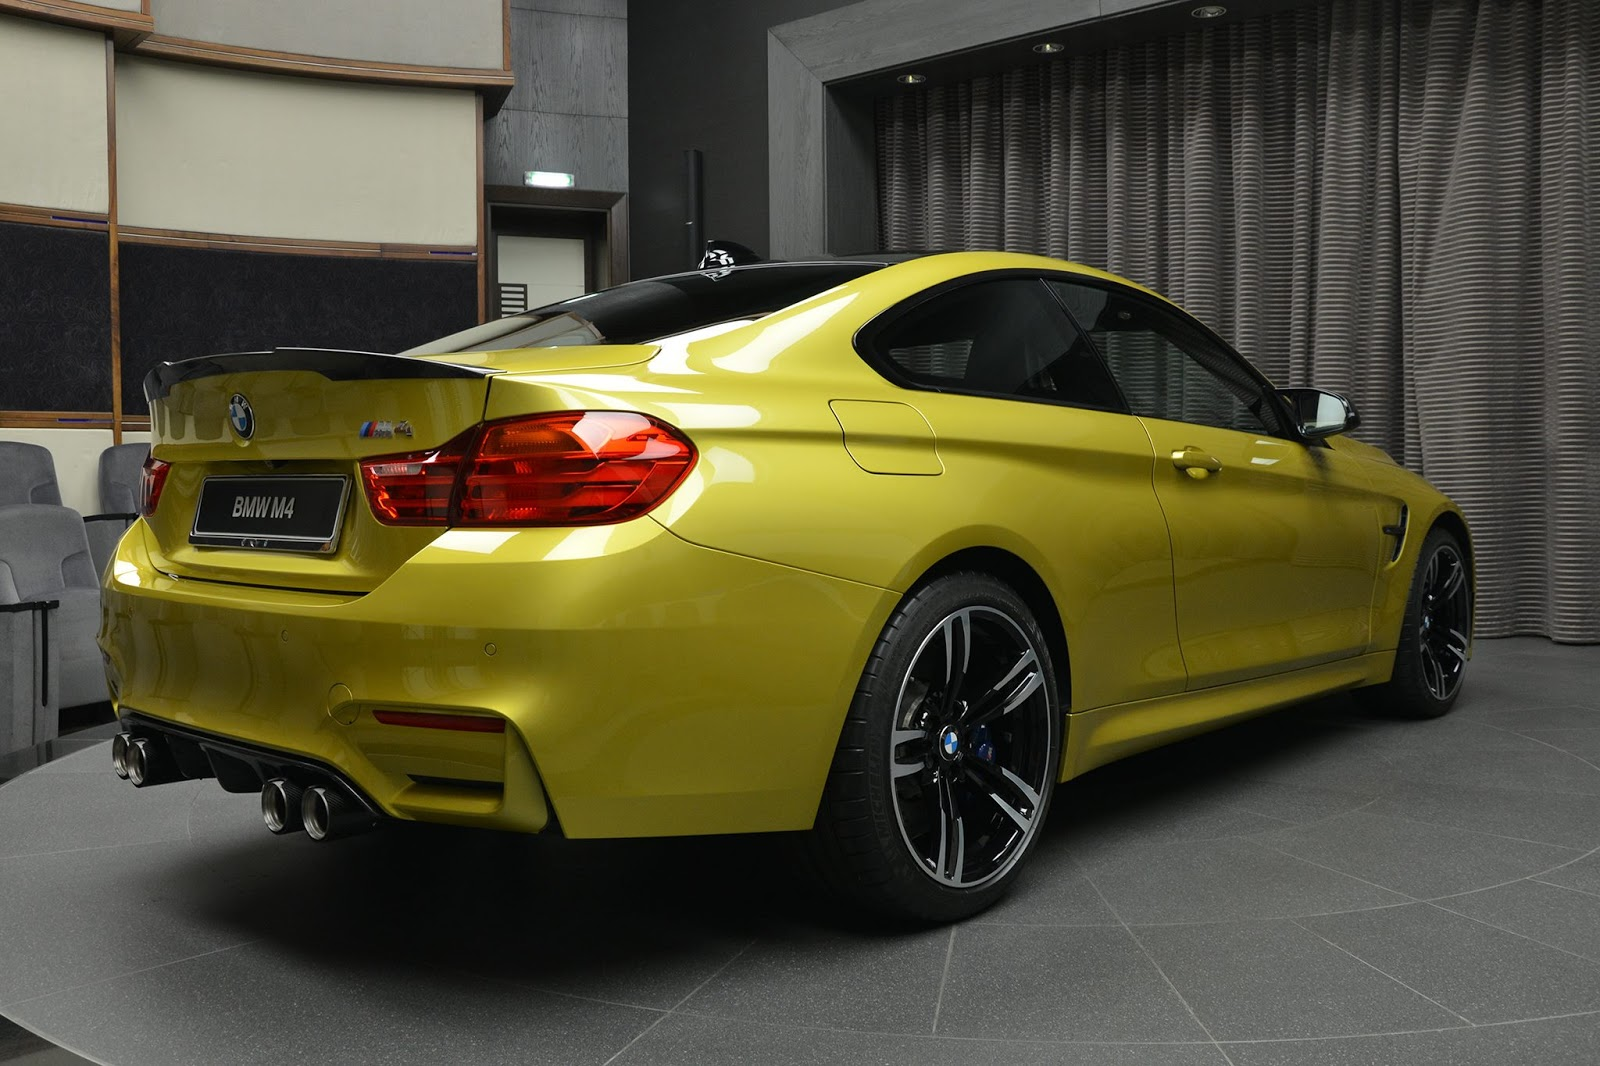 BMW_M4_Austin_Yellow_12